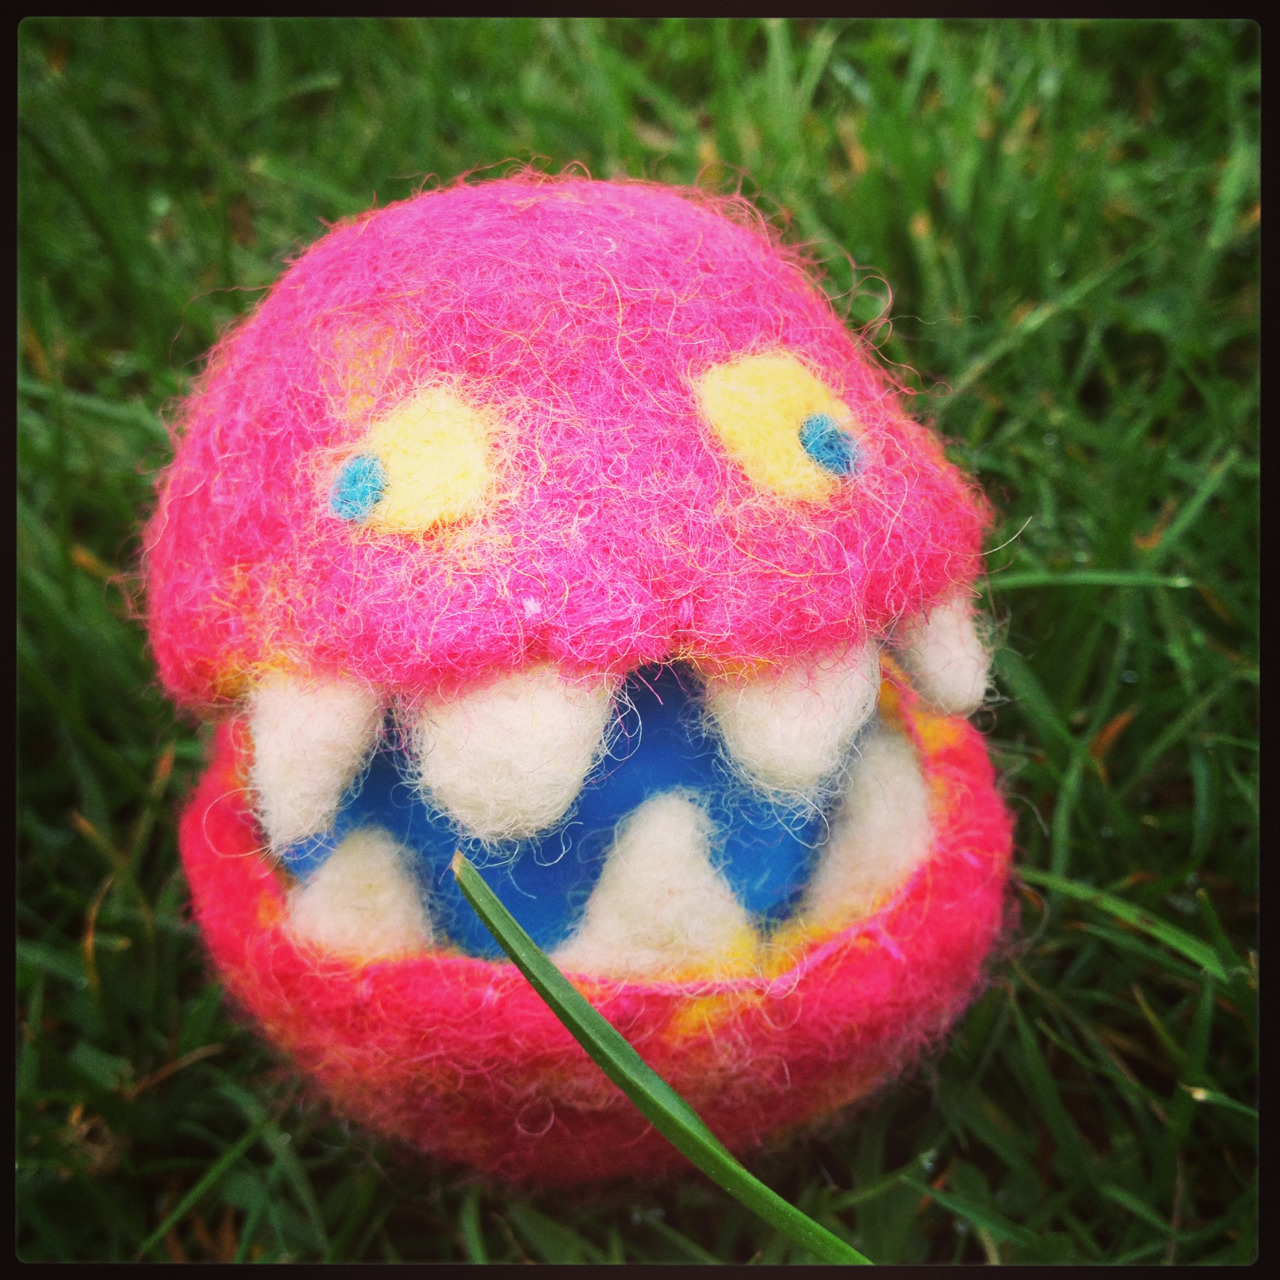 Easter Egg Monster. The other night, the lovely Rachel Robinson taught me how to felt. It was pretty freakin' fun in a meditative, sipping tea, wool arts kind of way and I only stabbed my finger a couple times! We made Easter eggs and I turned mine into a monster. Rachel has a link to the instructions we used on her pinterest if you are feeling crafty.